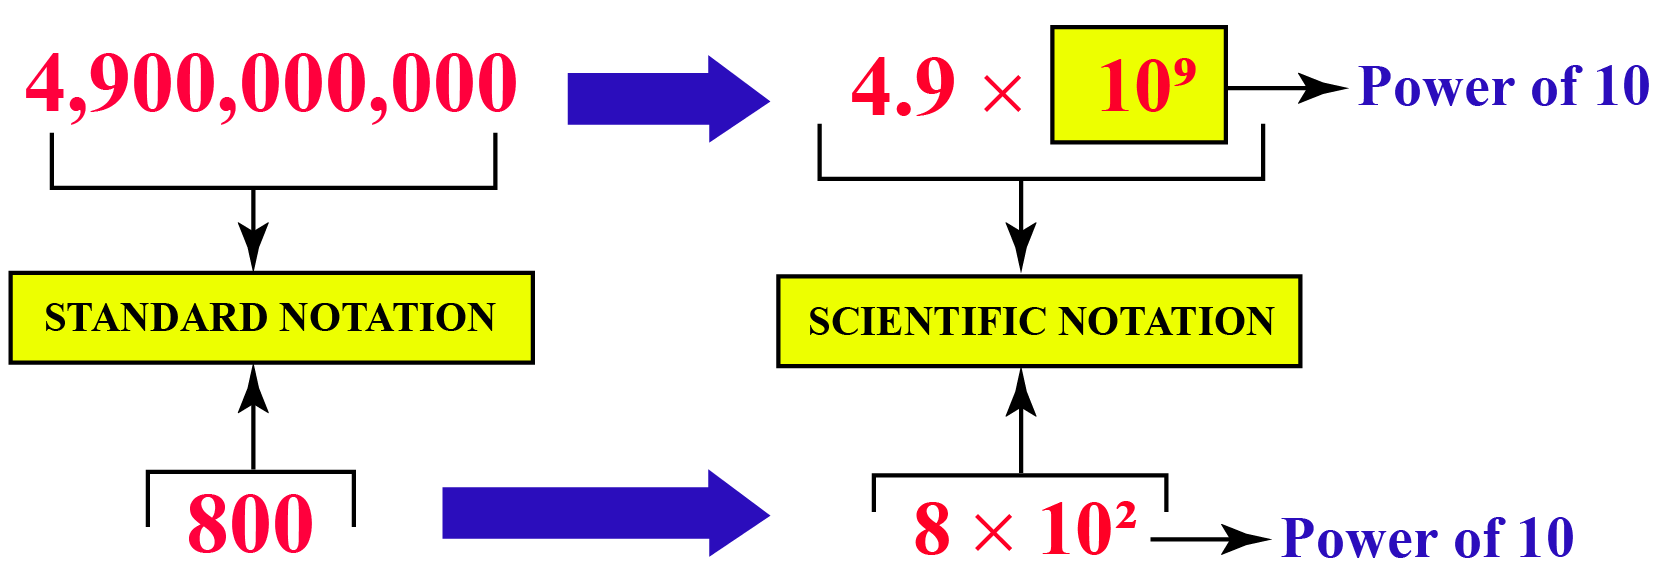 Standard notation and scientific noation examples